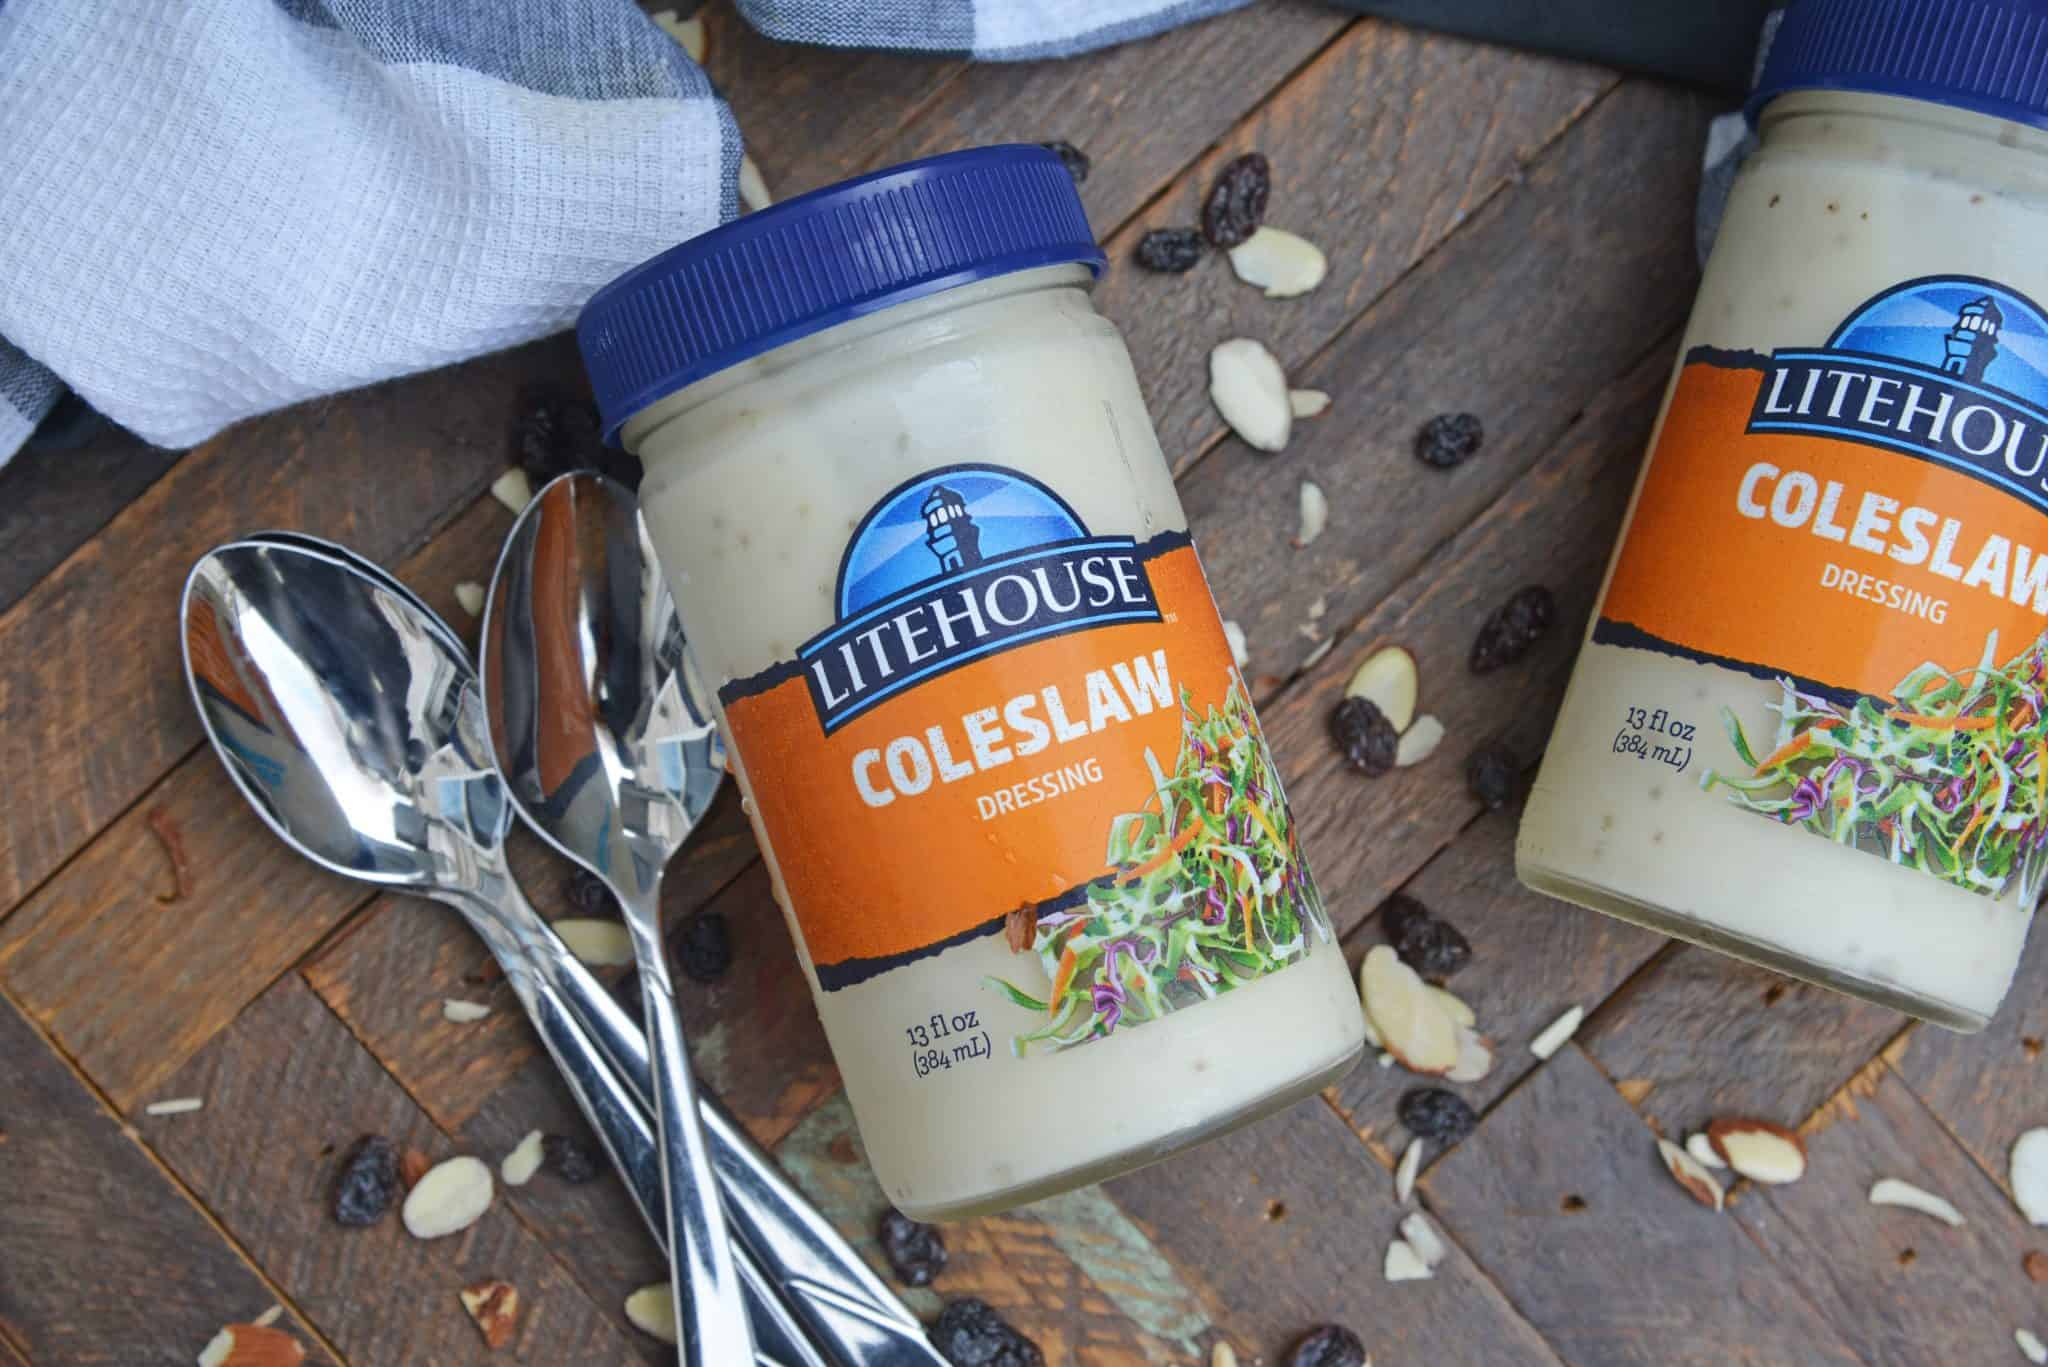 Creamy Coleslaw with almonds and raisins is an easy coleslaw recipe that is mix and serve. Coleslaw dressing, almonds, raisins and crisp cabbage mix are the perfect BBQ dish. #creamycoleslaw @coleslawrecipe www.savoryexperiments.com